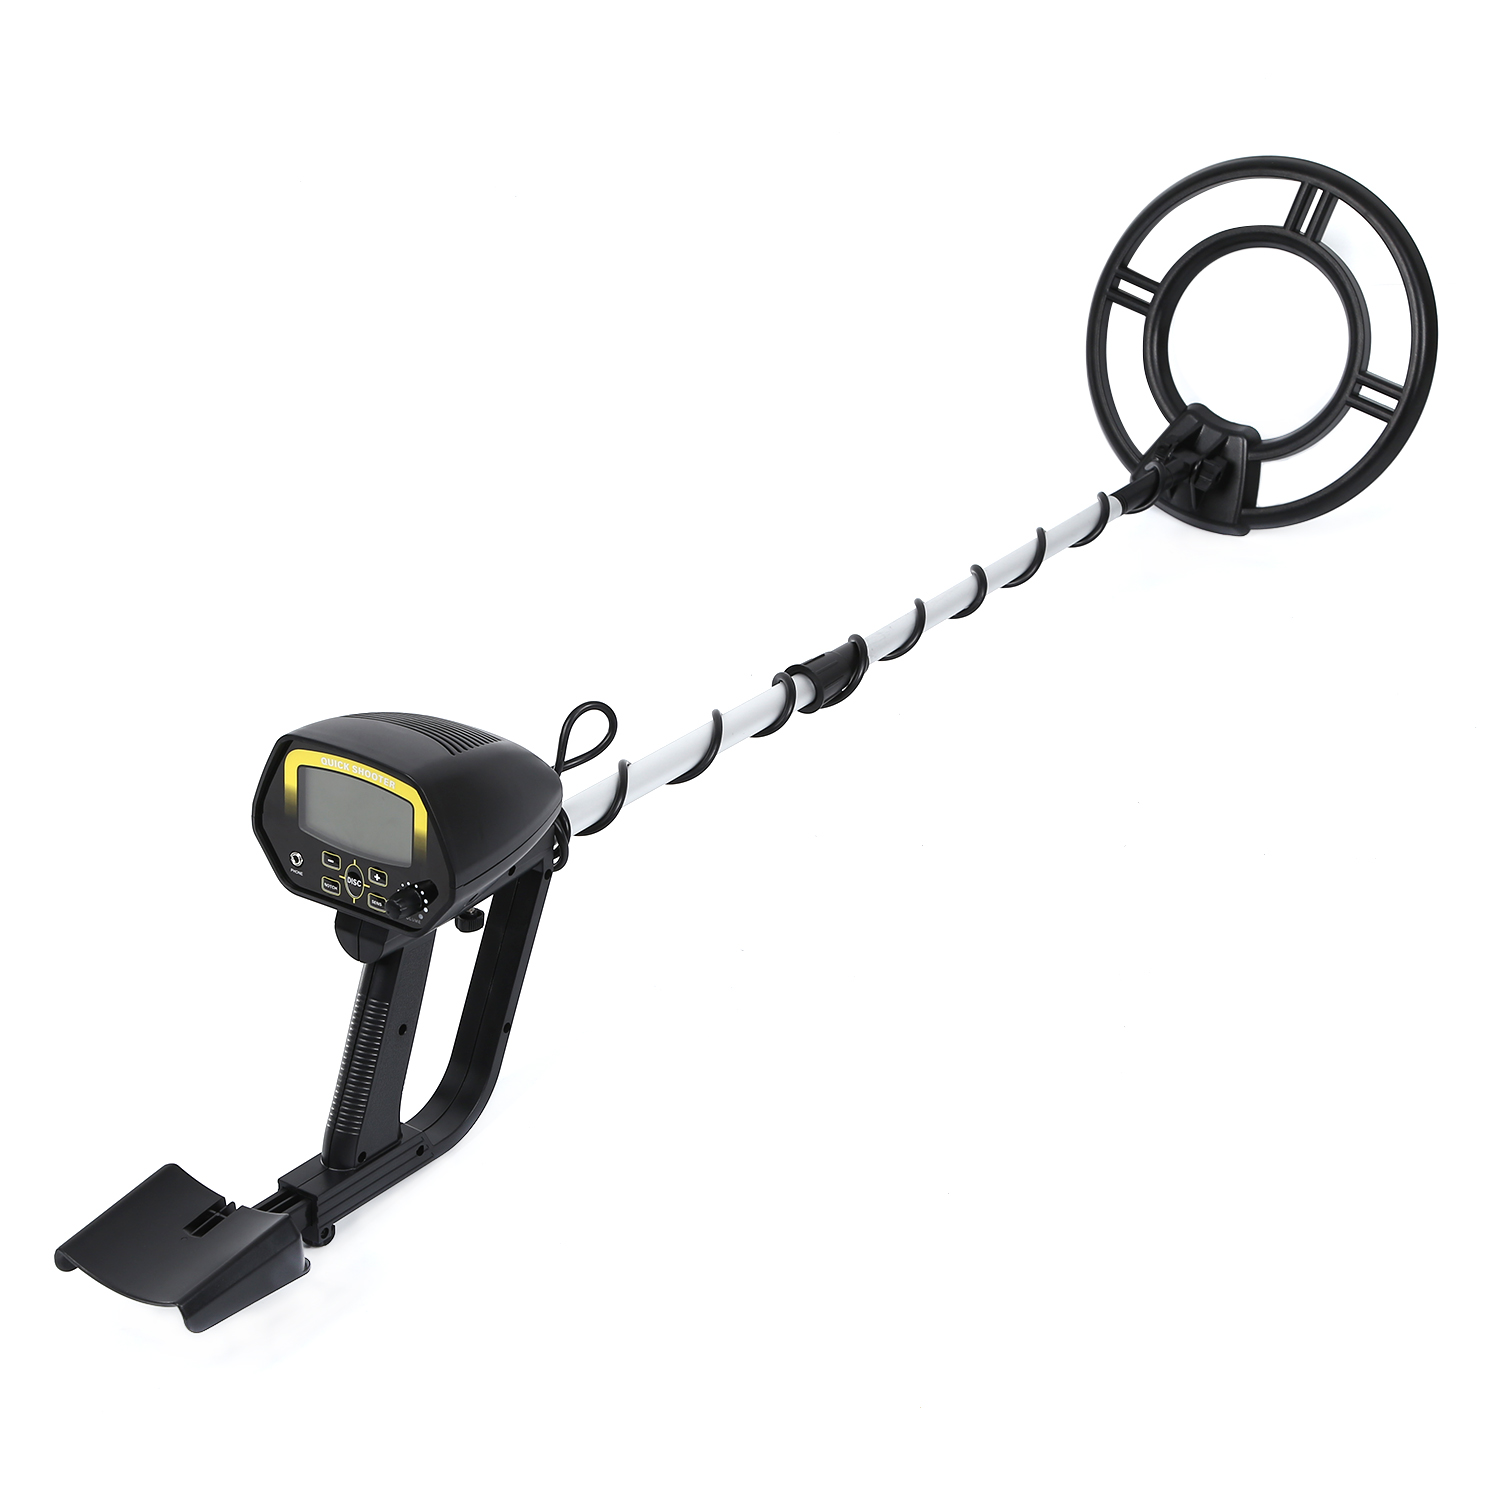 Underground Metal Detector MD4060 Waterproof Jewelry Treasure Hunting Gold Digger Hunter Adjustable Metal FinderUnderground Metal Detector MD4060 Waterproof Jewelry Treasure Hunting Gold Digger Hunter Adjustable Metal Finder